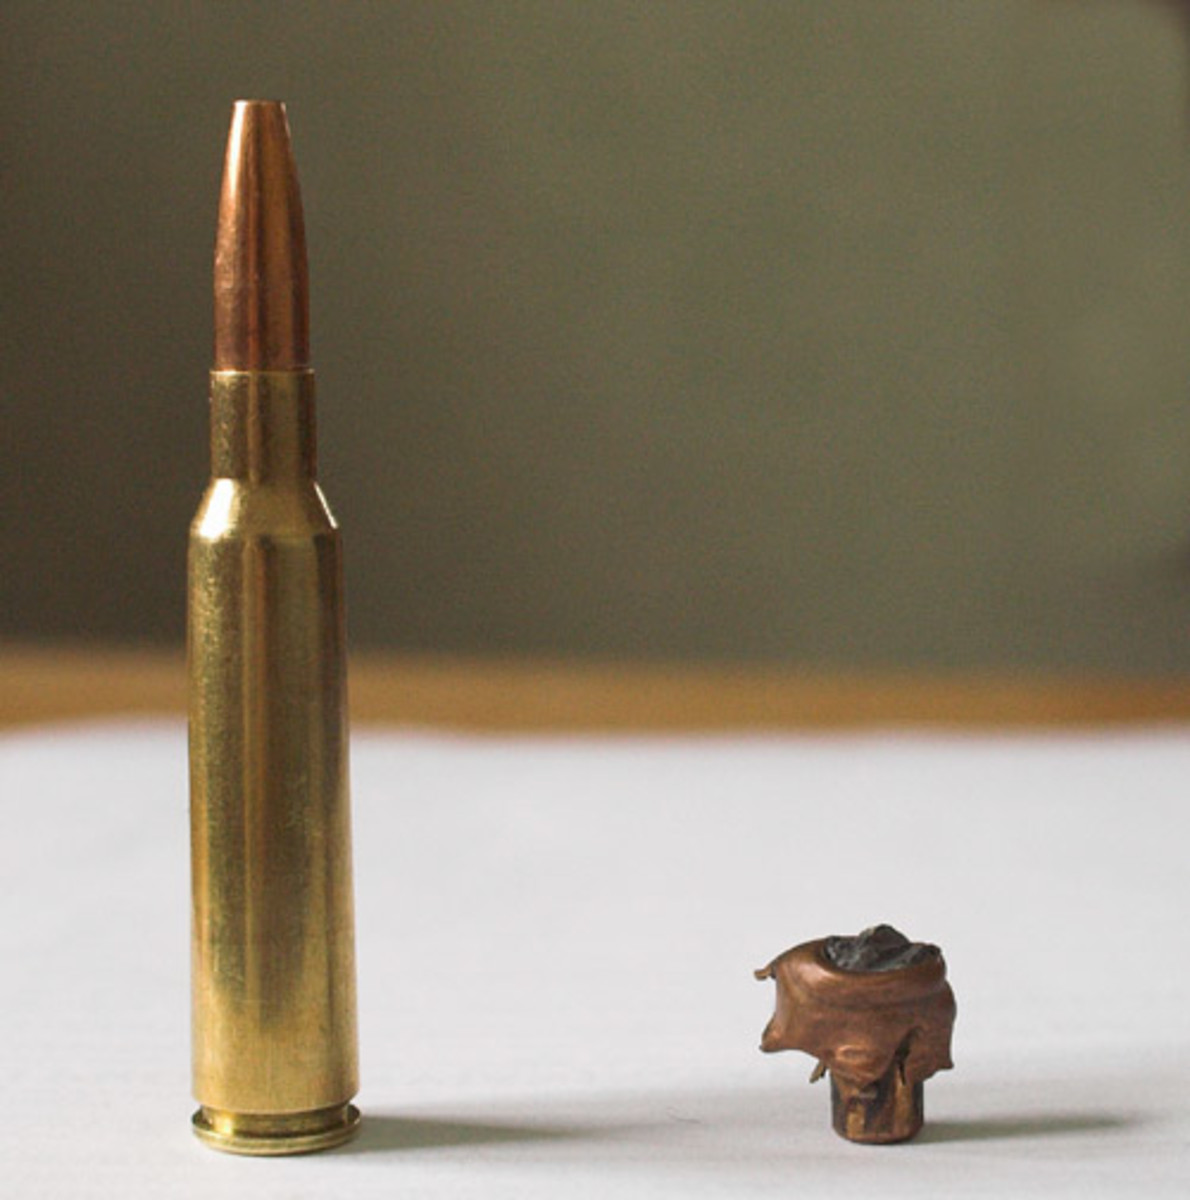 A 6.5x55 Bullet Recovered From A Moose